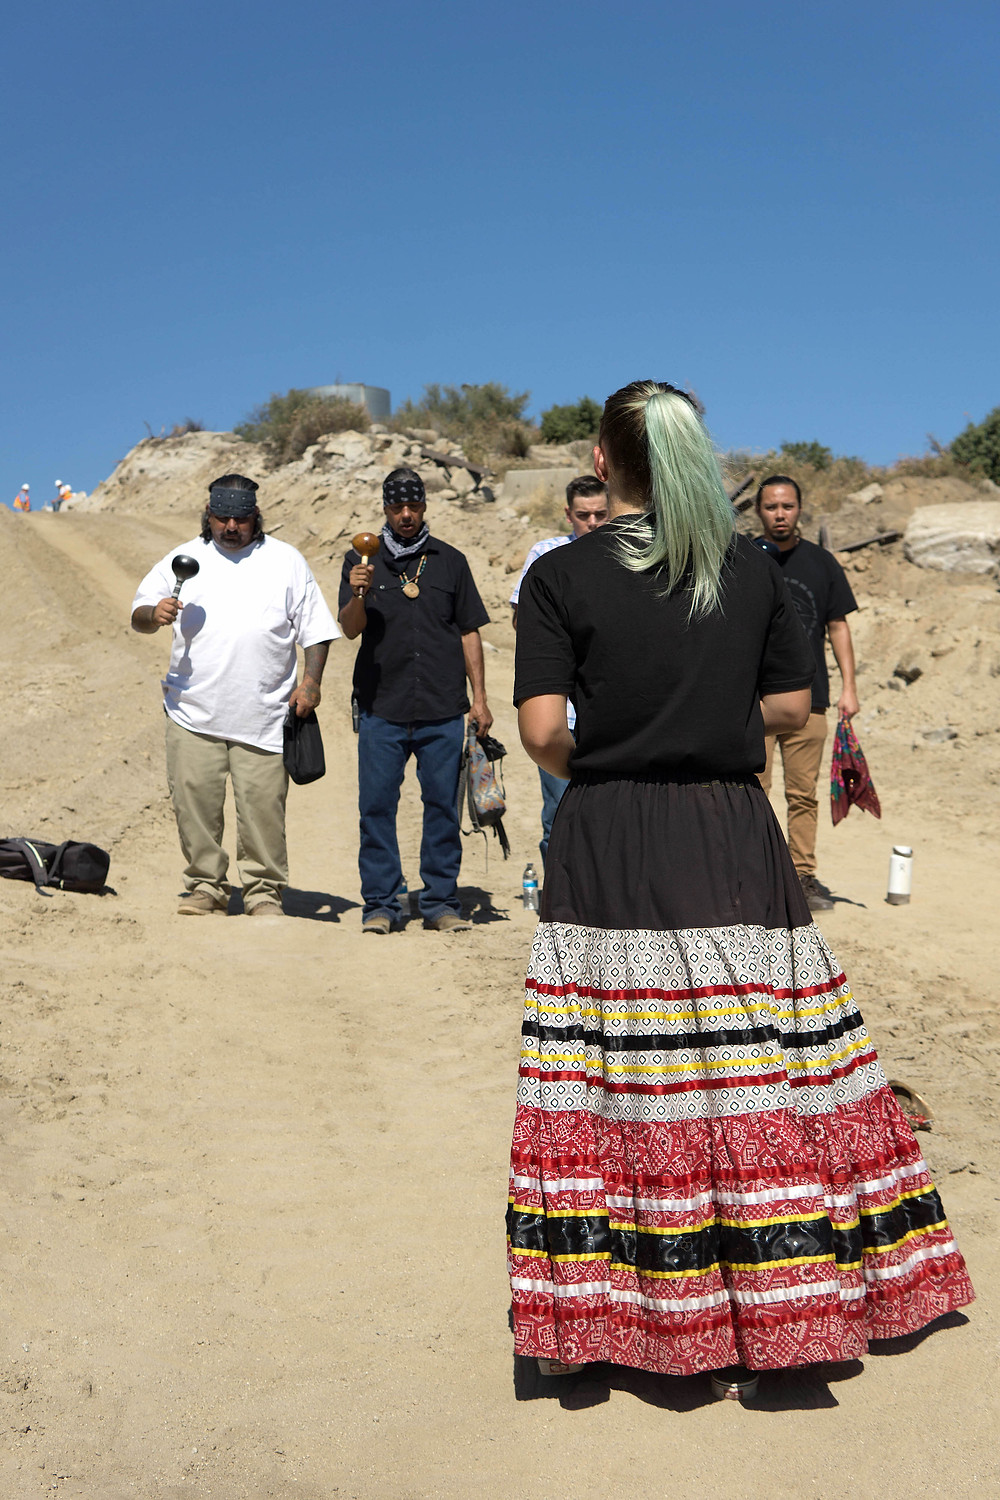 Baines and other Kumeyaay tribal members in ceremony near border wall construction. (Credit: James Stout)